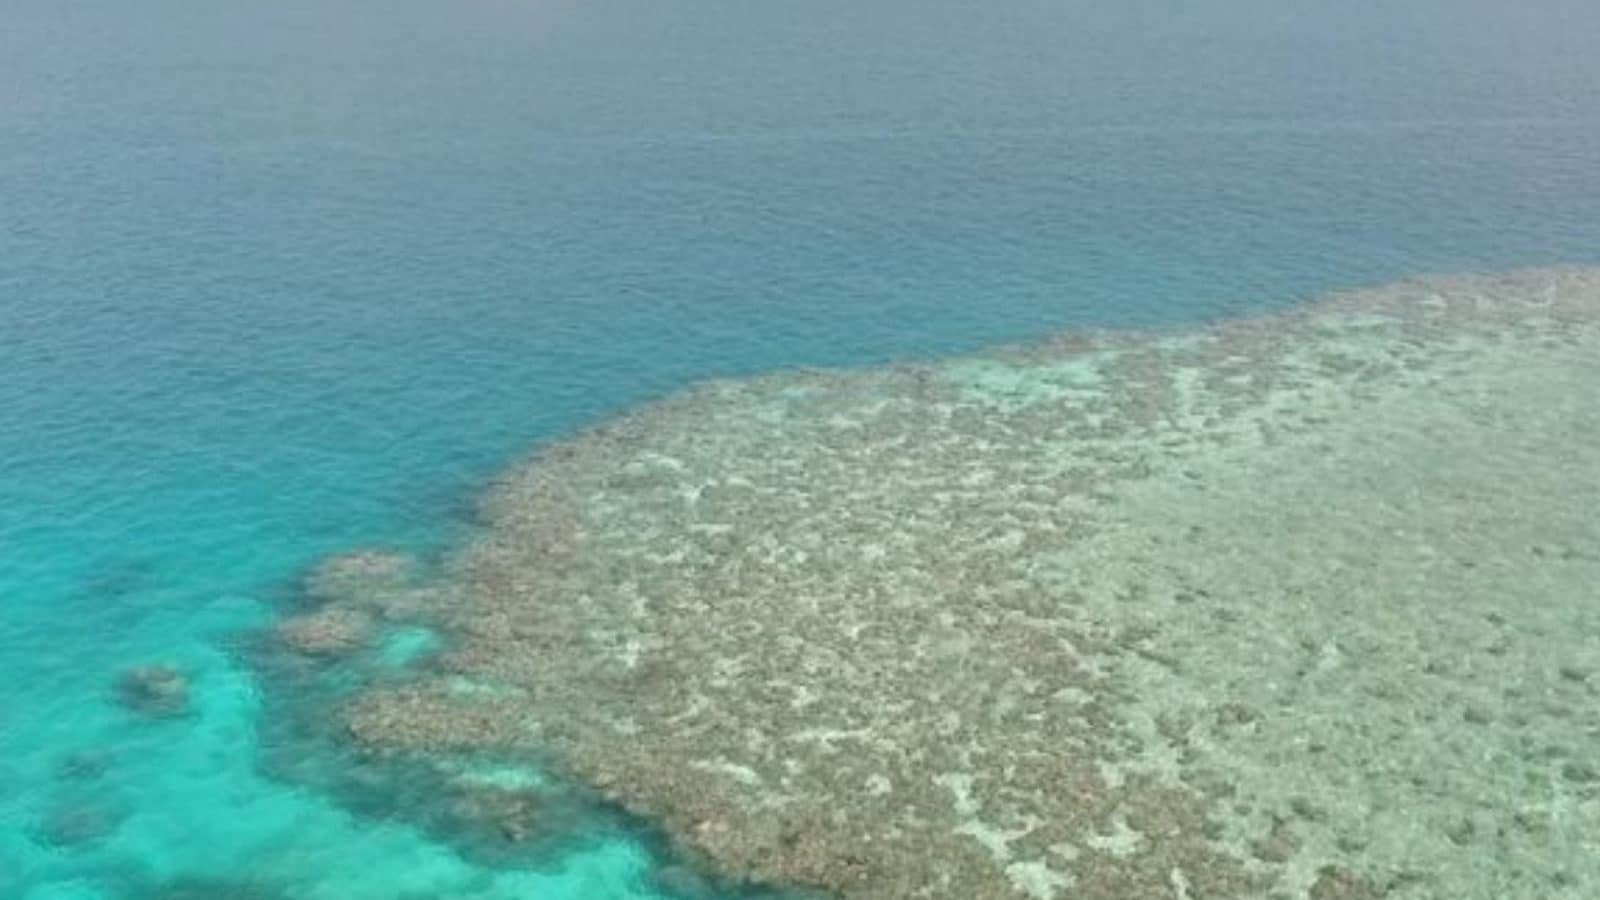 Fluffy Little Clouds May Be Best Bet to Save Australia's Great Barrier Reef